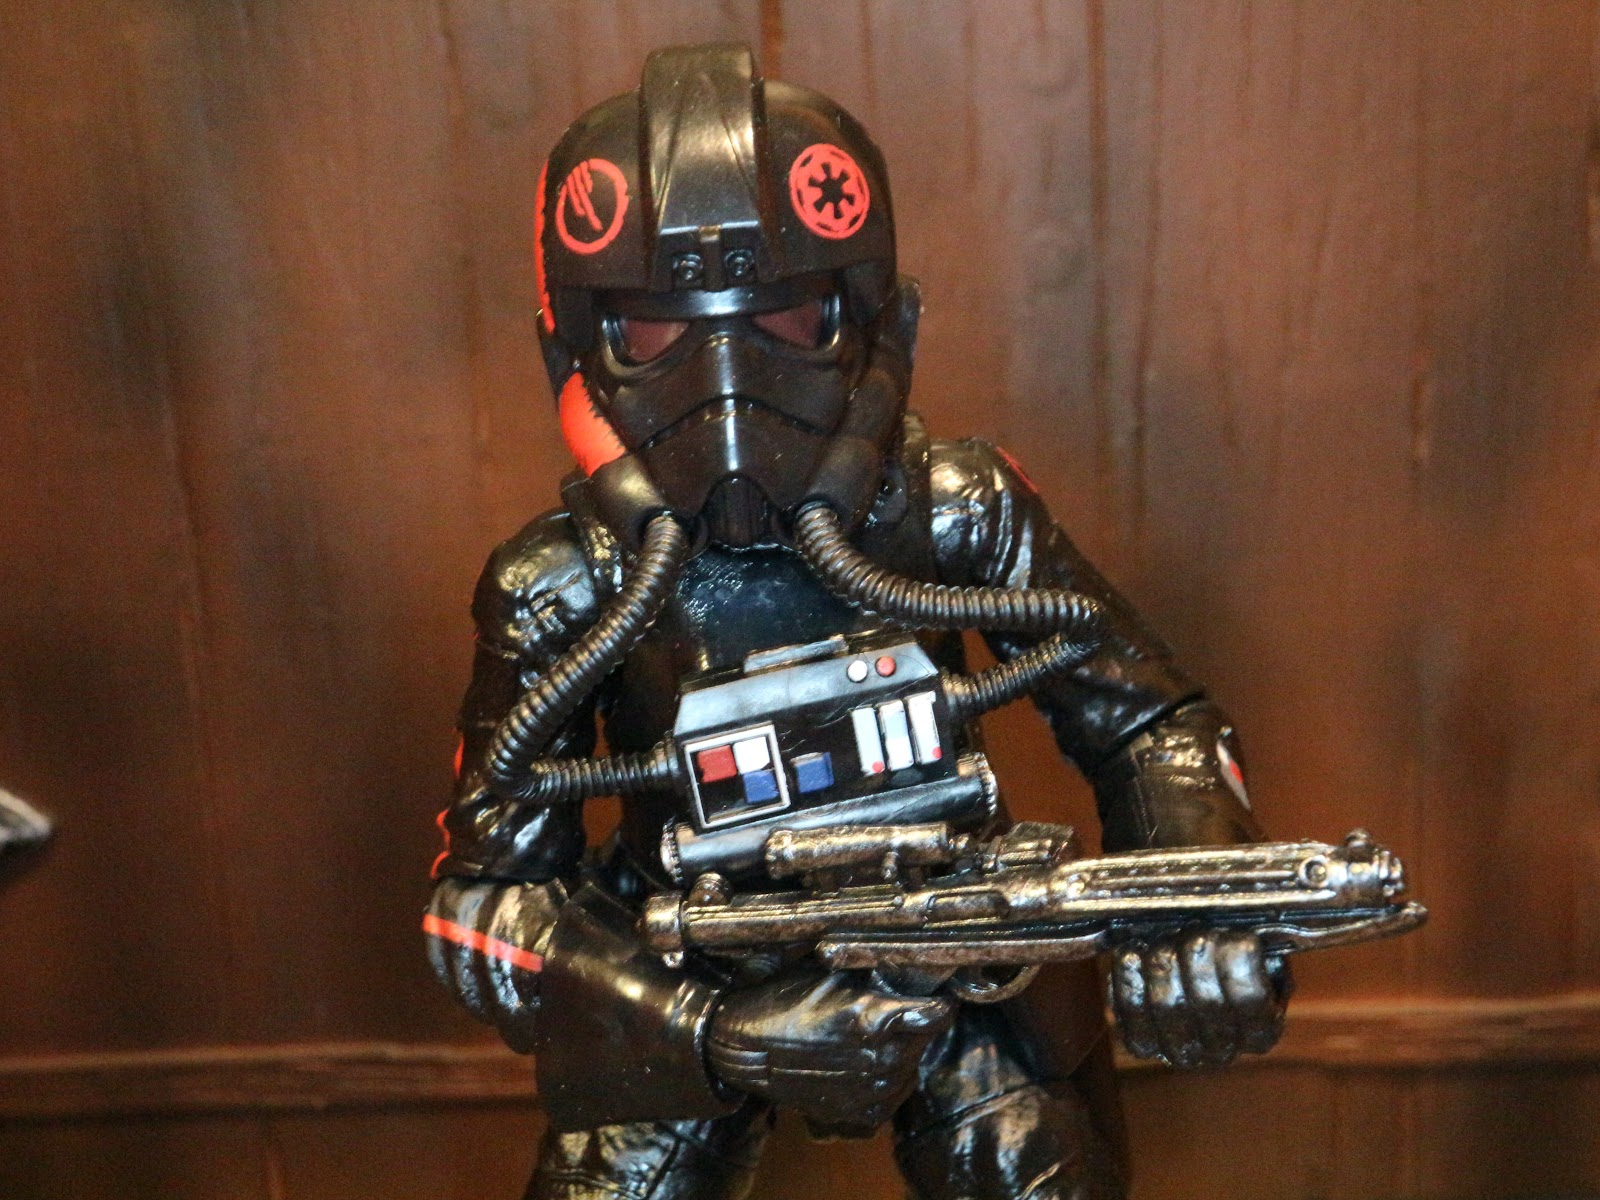 Action Figure Barbecue Road To The Last Jedi Inferno Squad Agent From Star Wars The Black Series Phase Iii By Hasbro